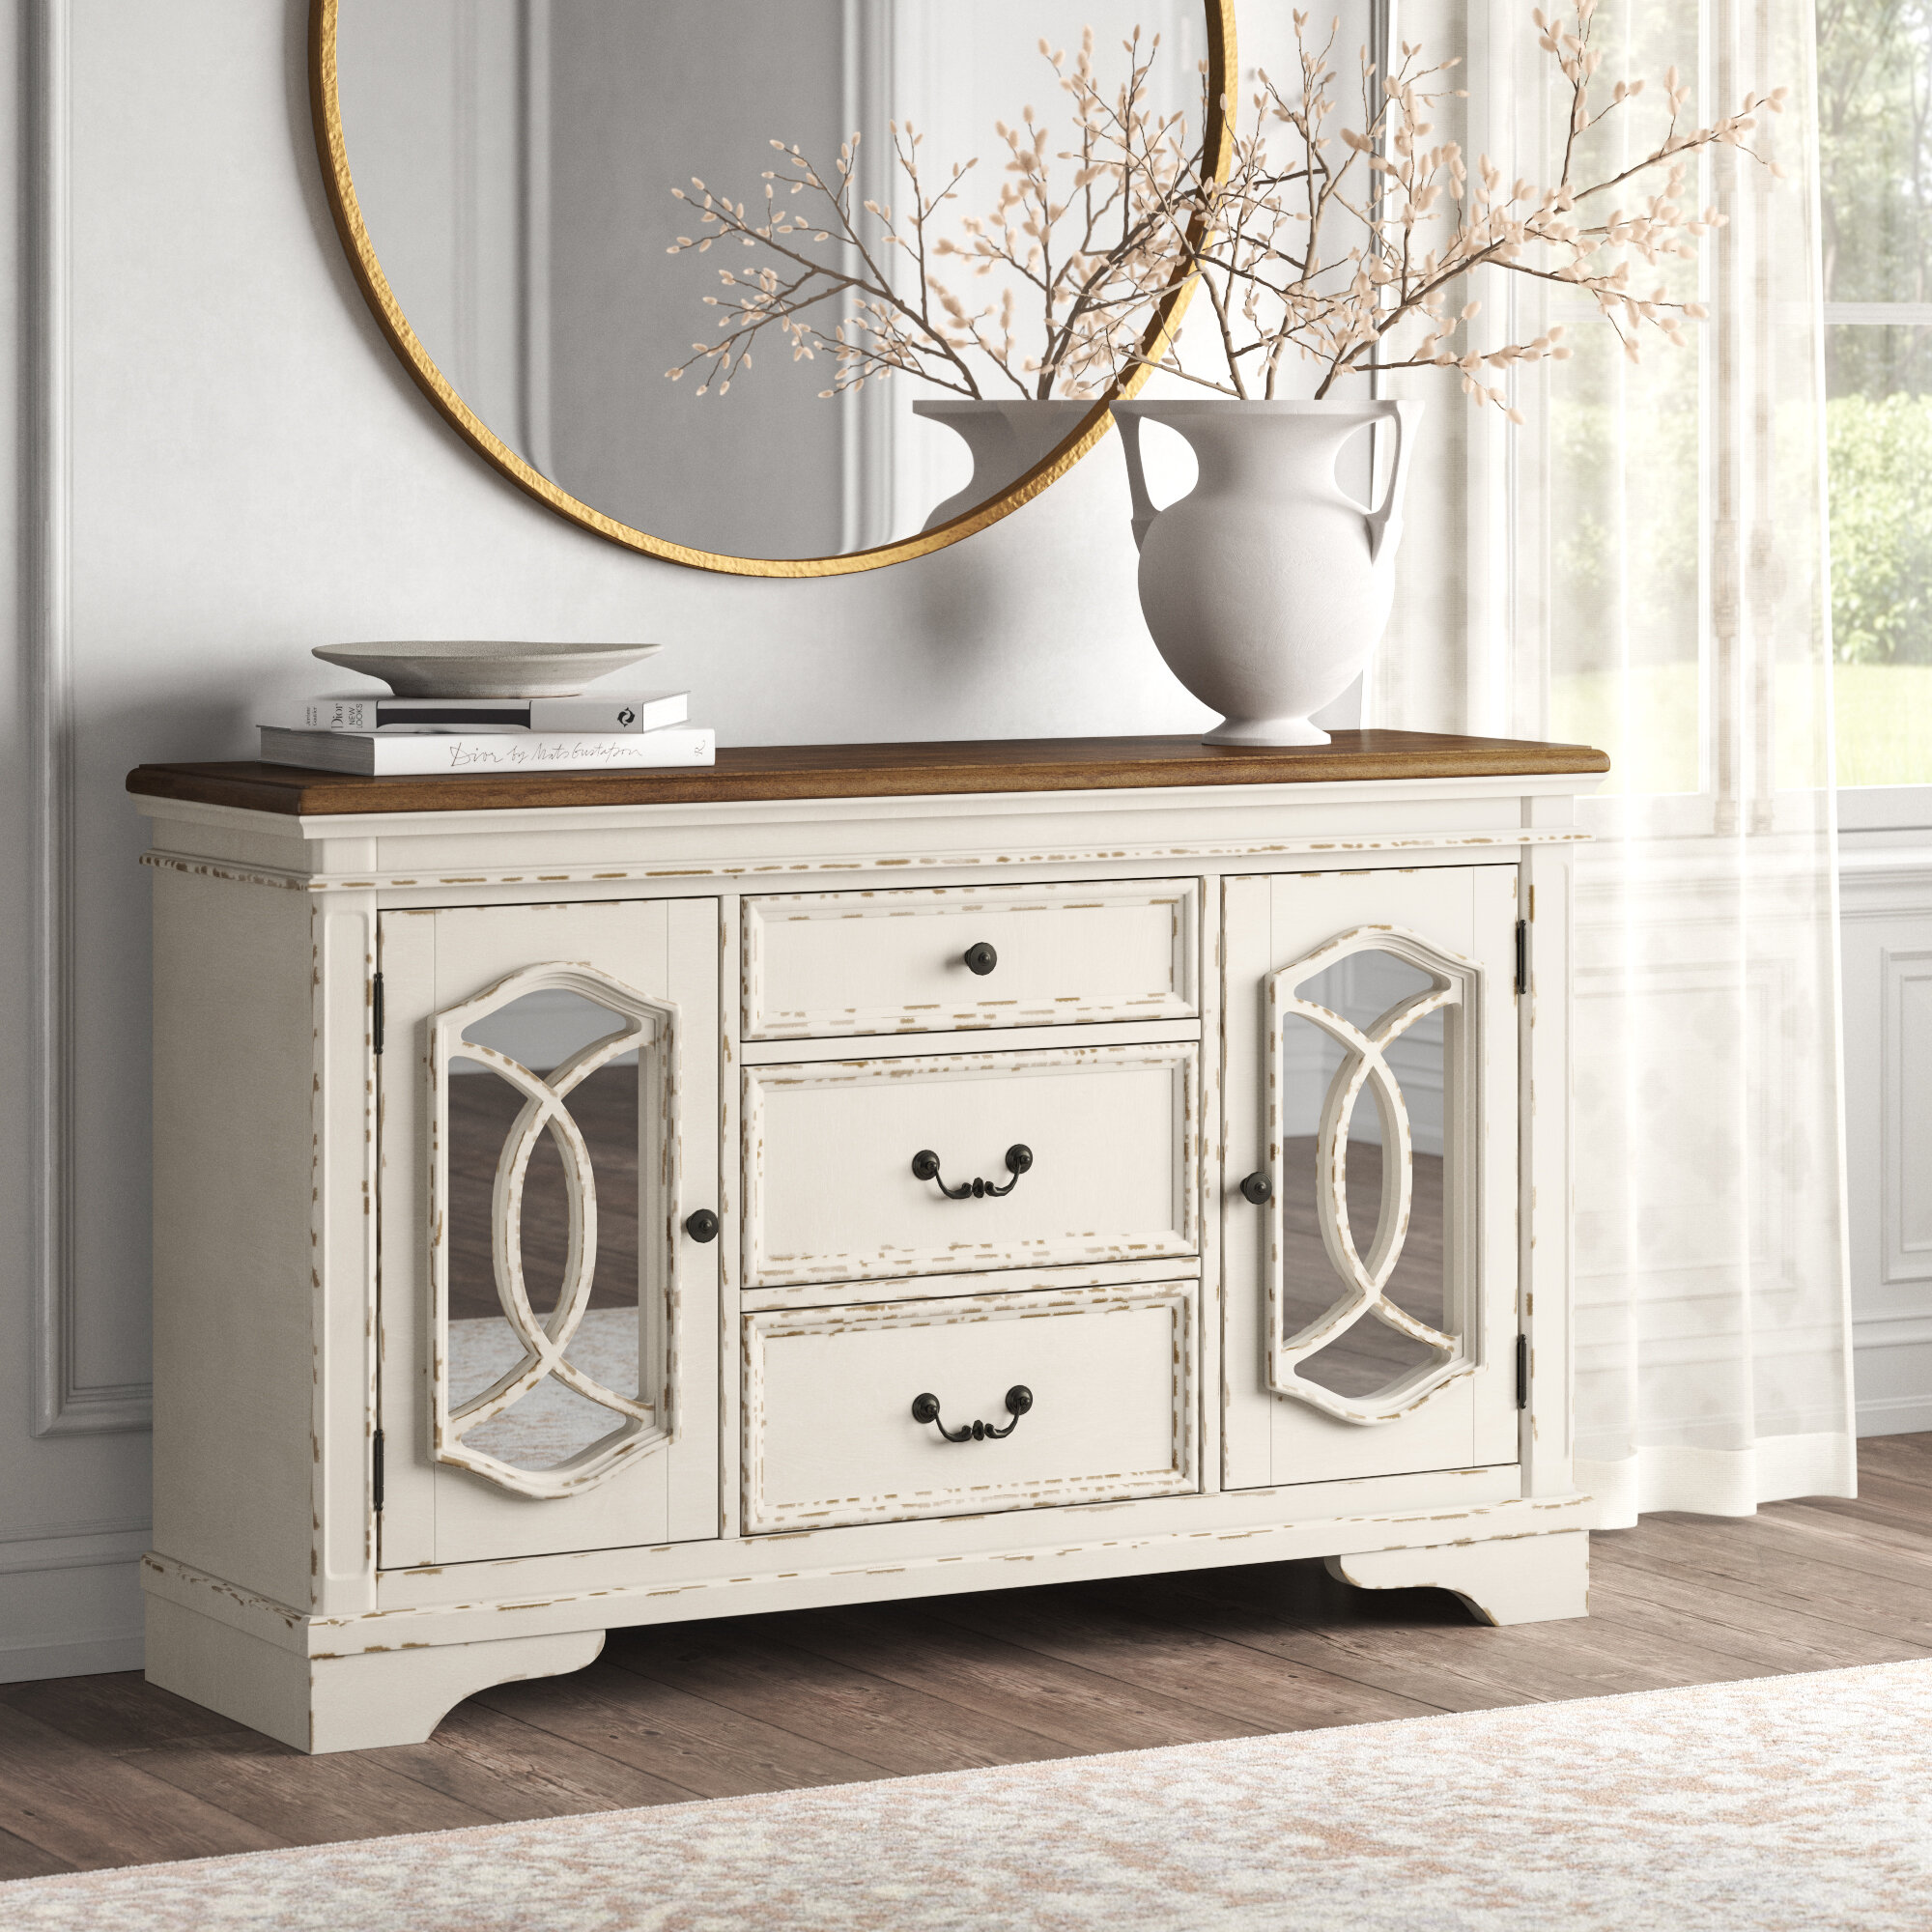 Grab Magnificent Dining Room Servers And Sideboards That Wow